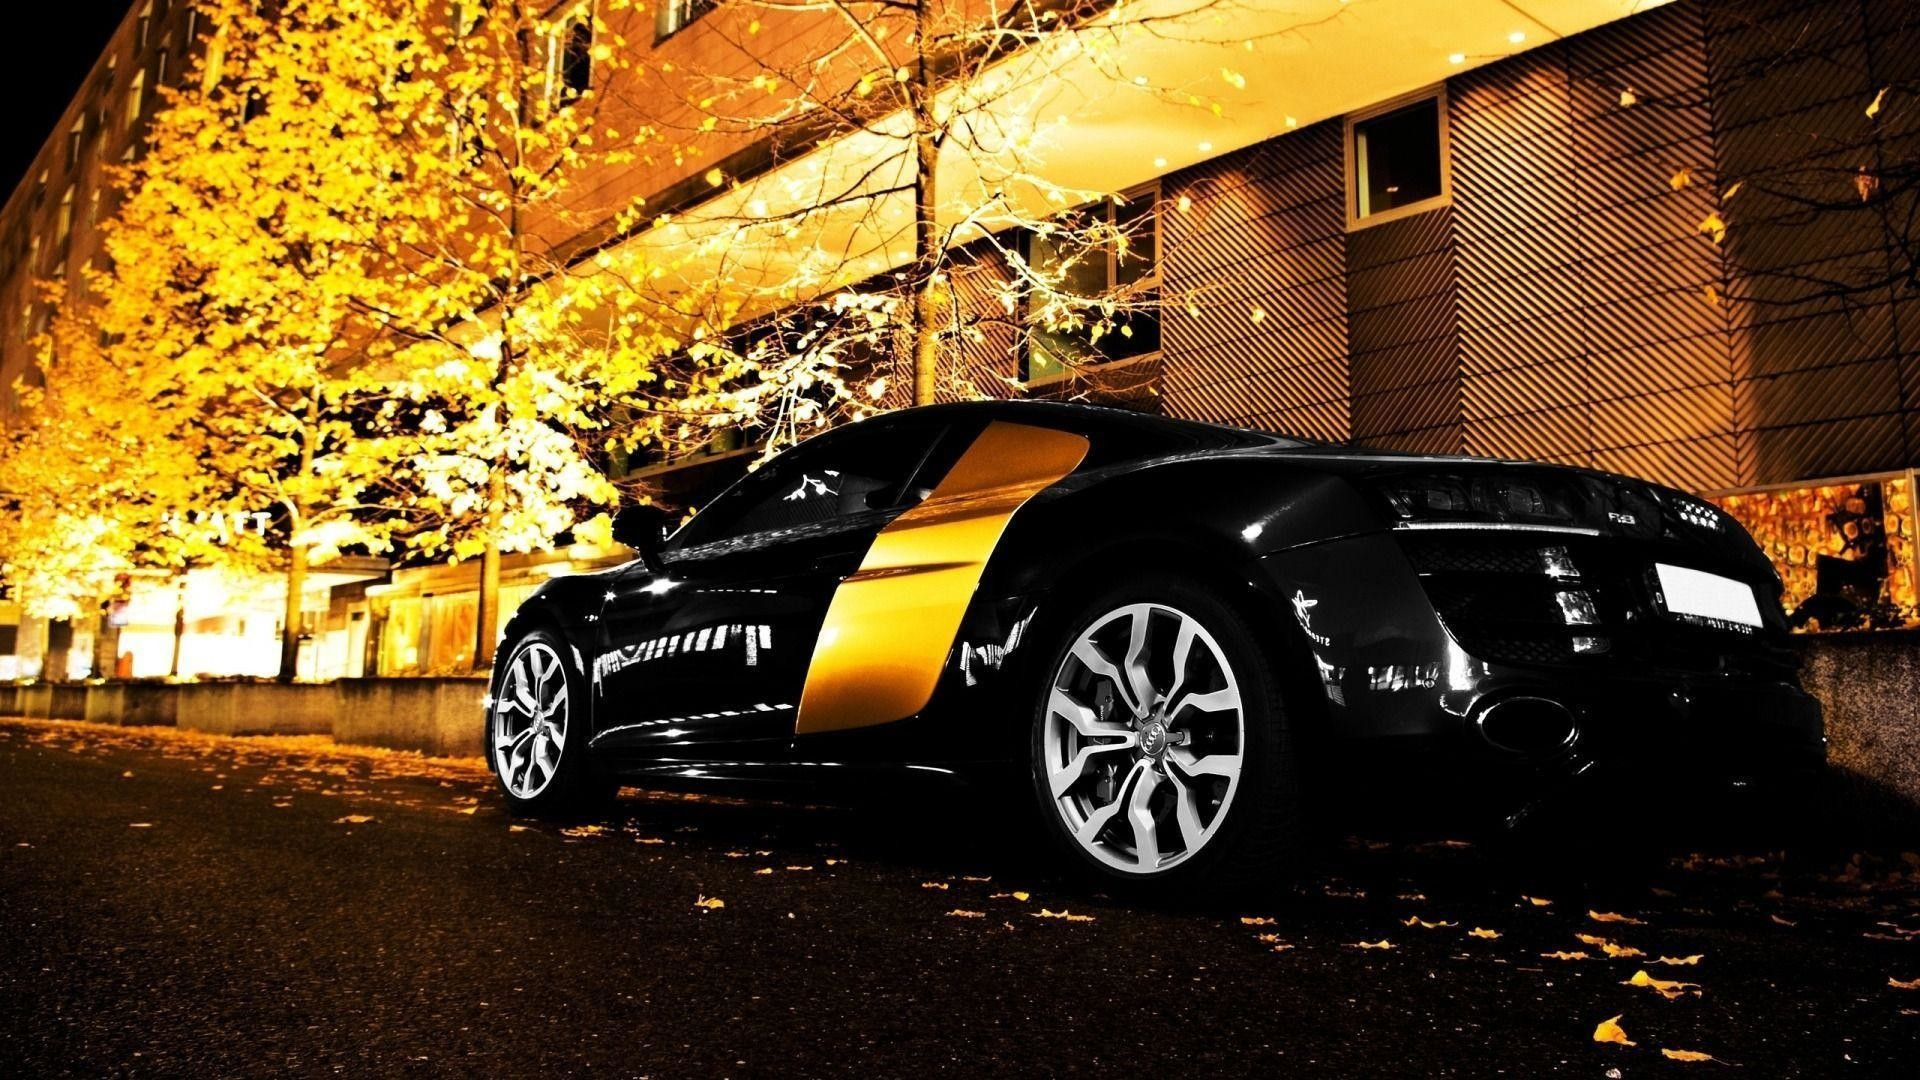 Awesome Car Backgrounds 65 Images